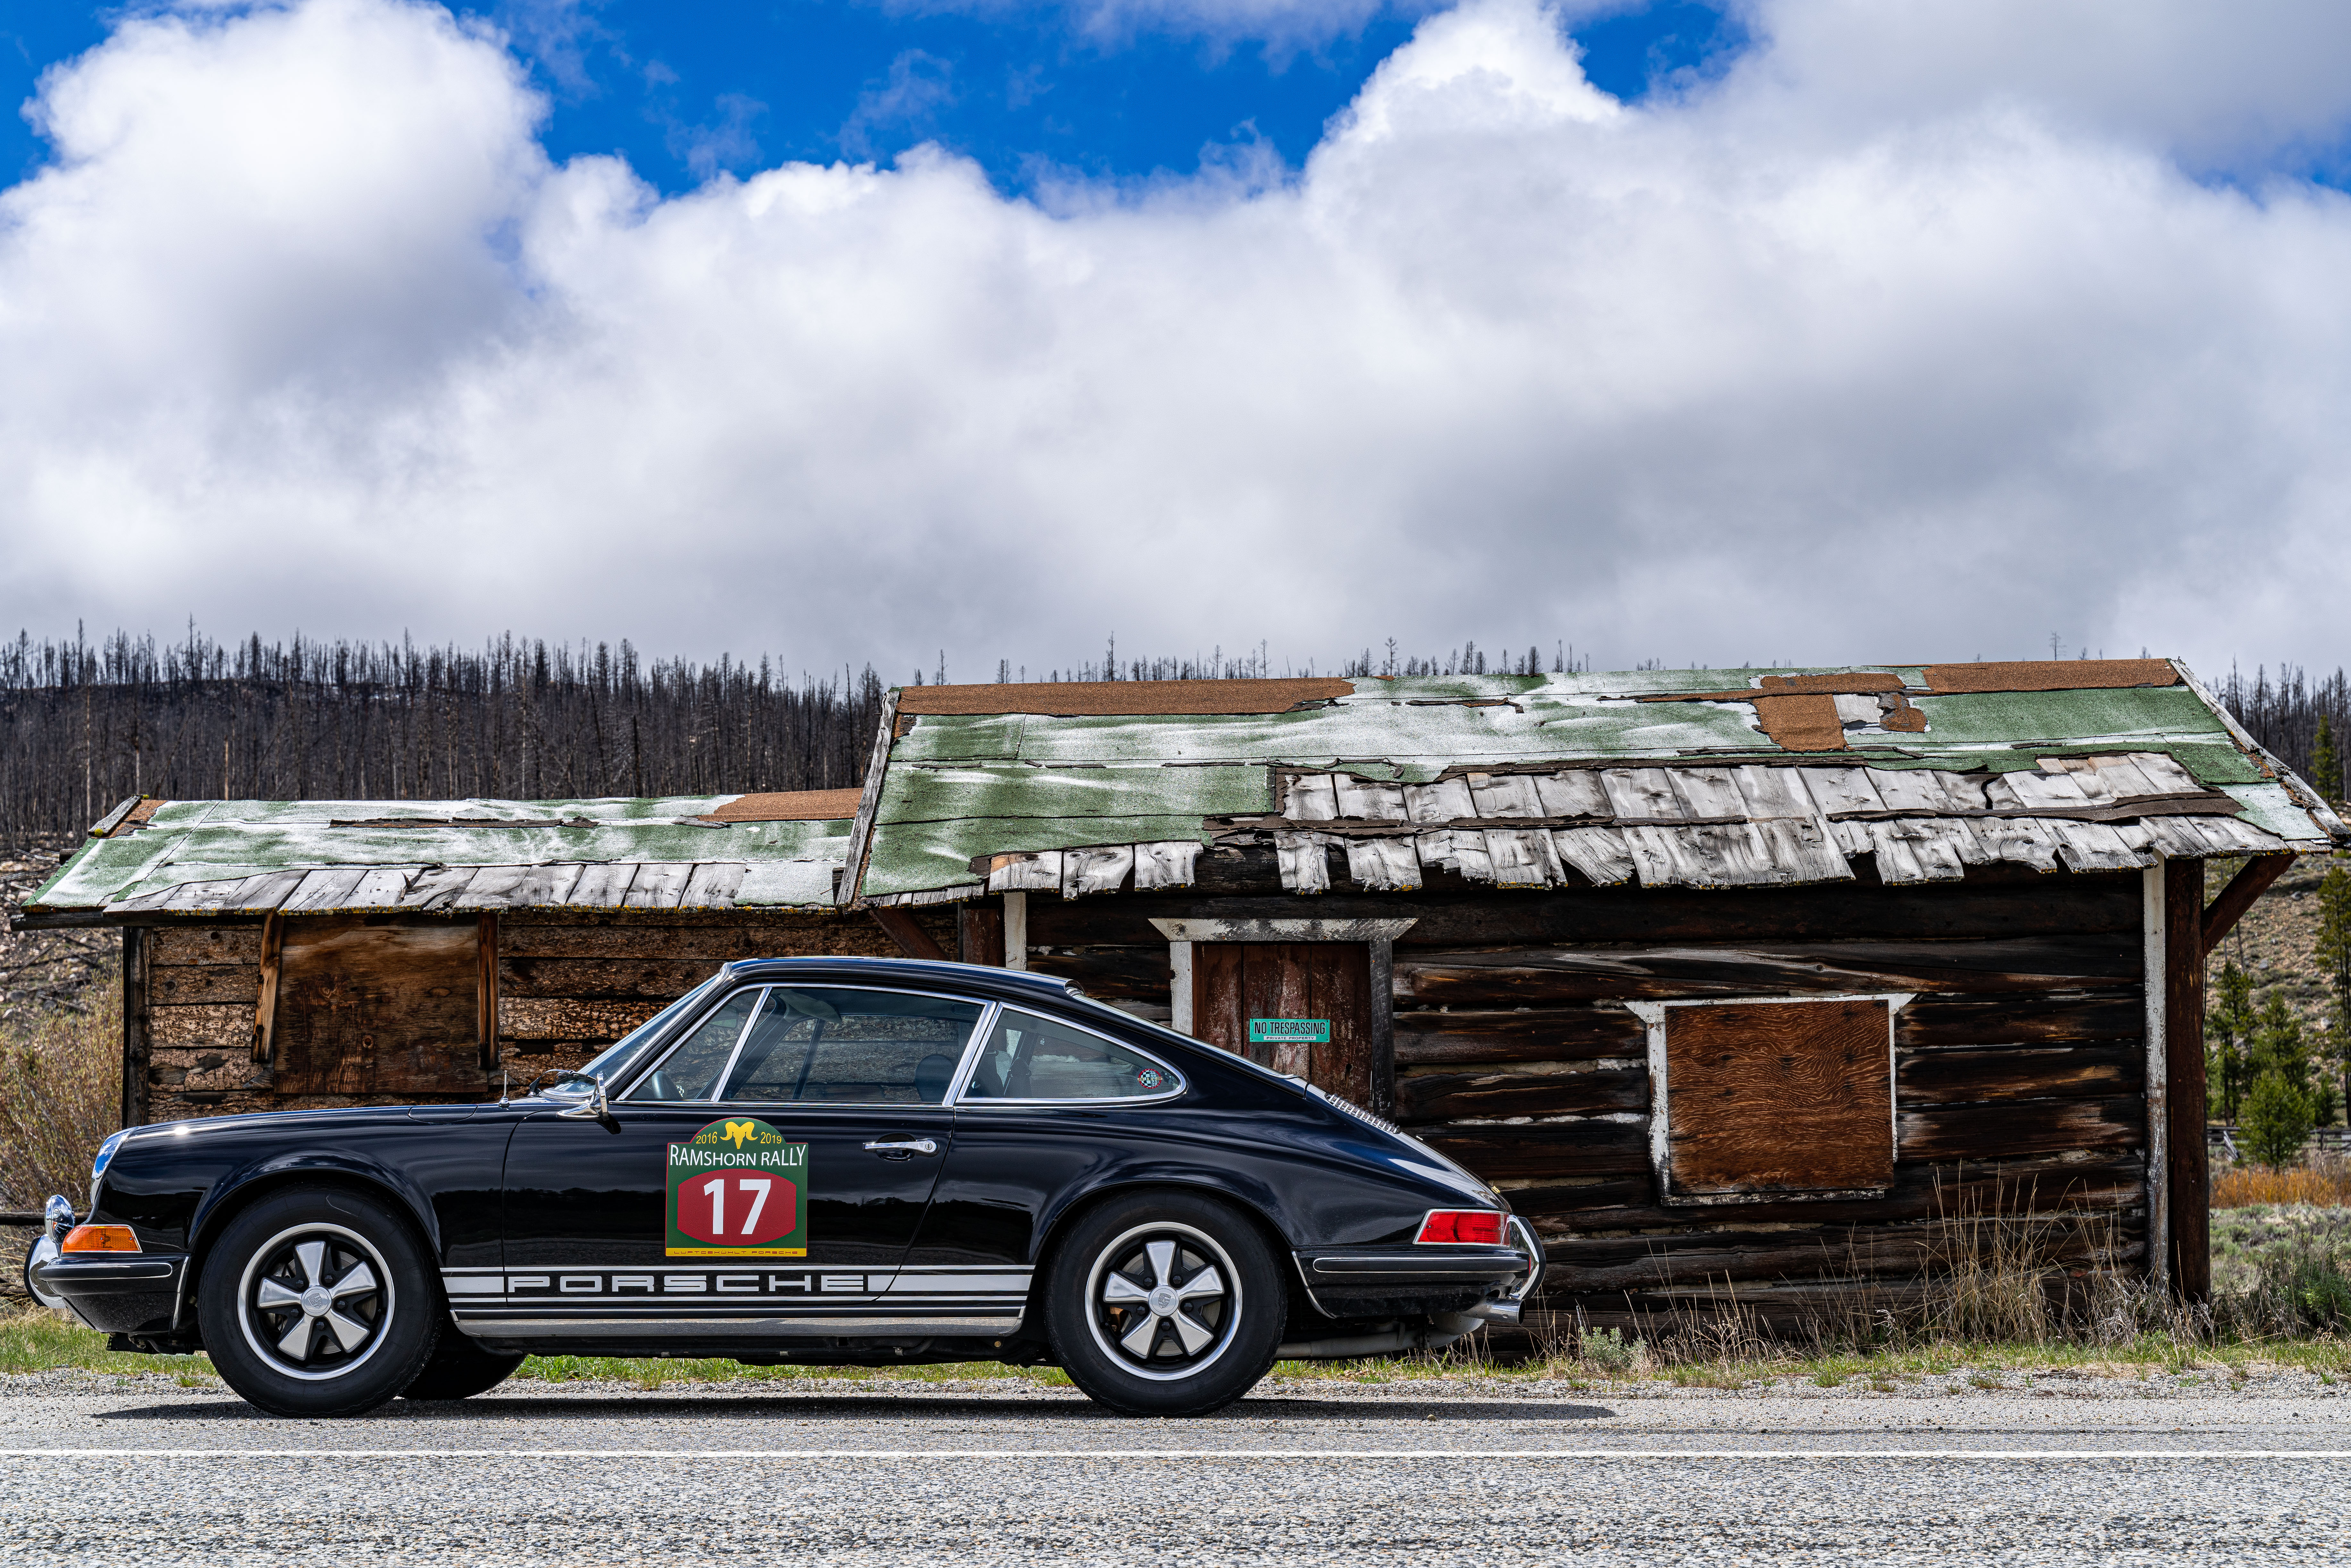 911s next to abandoned house front - better